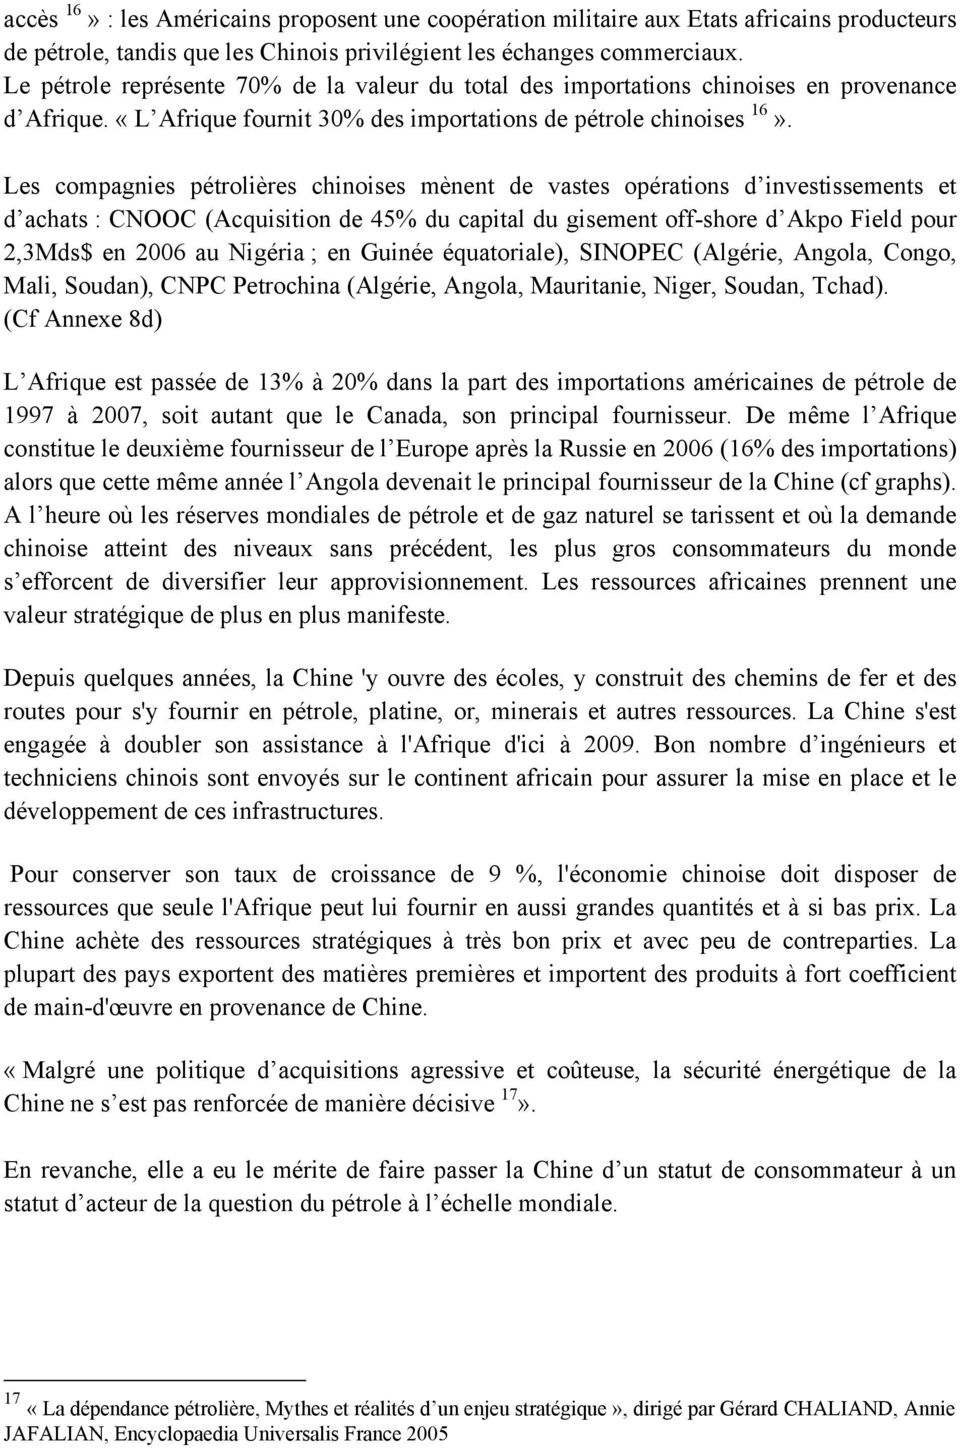 Les compagnies pétrolières chinoises mènent de vastes opérations d investissements et d achats : CNOOC (Acquisition de 45% du capital du gisement off-shore d Akpo Field pour 2,3Mds$ en 2006 au